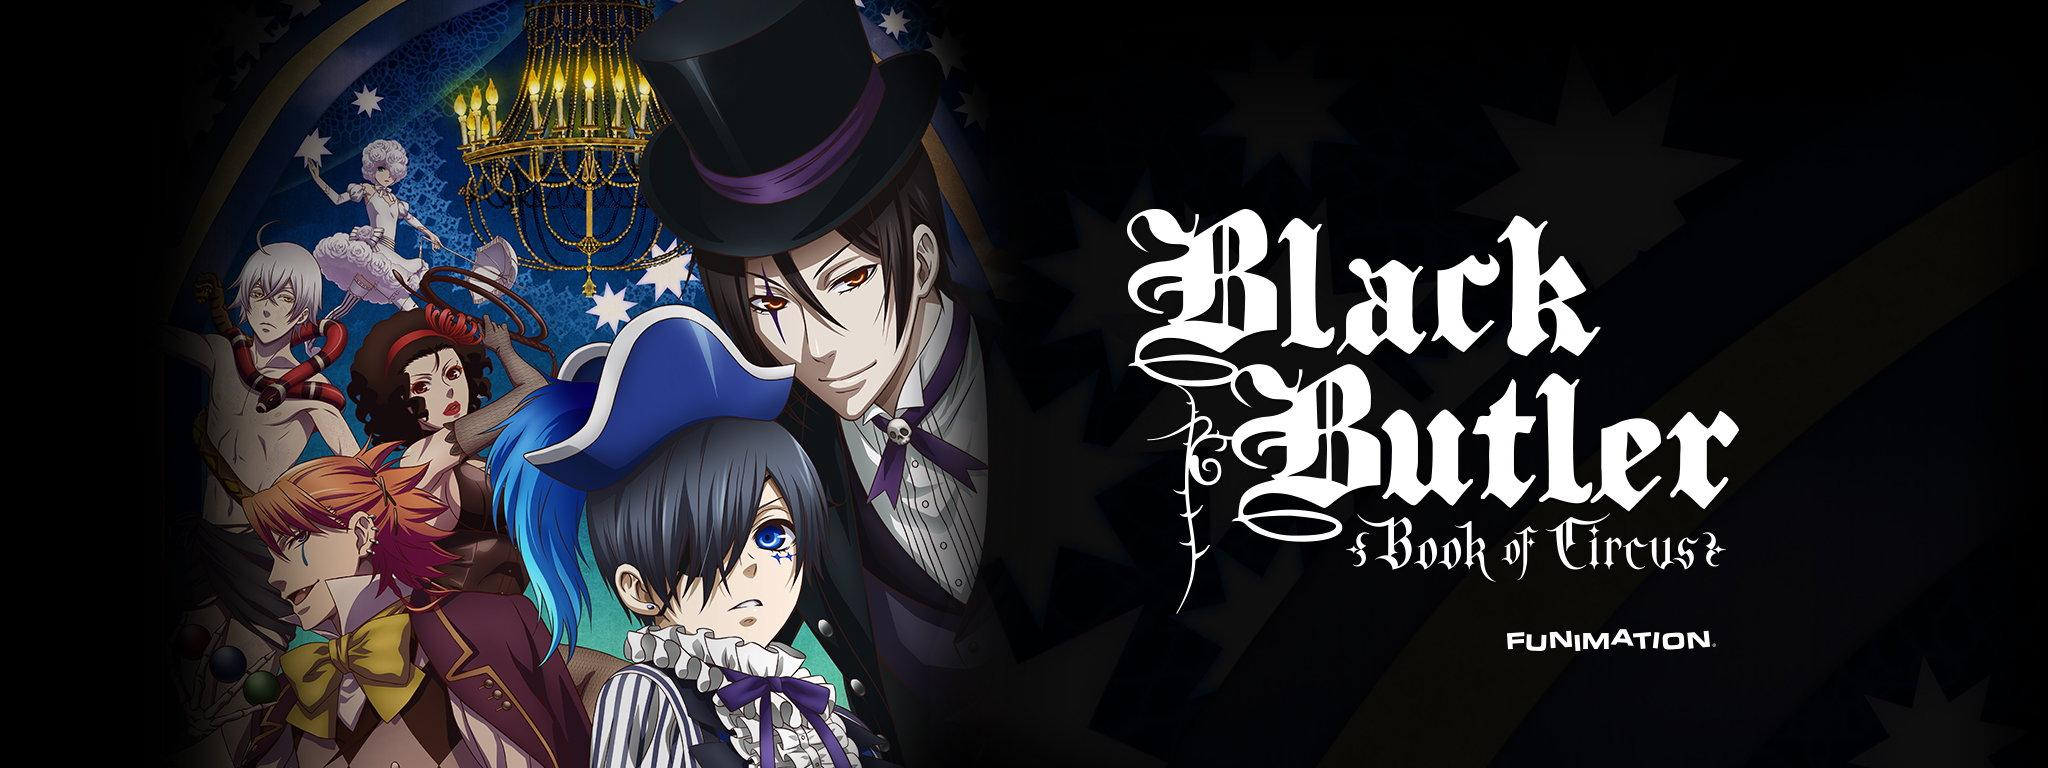 Watch Black Butler: Book of Circus Free Online | Yahoo View